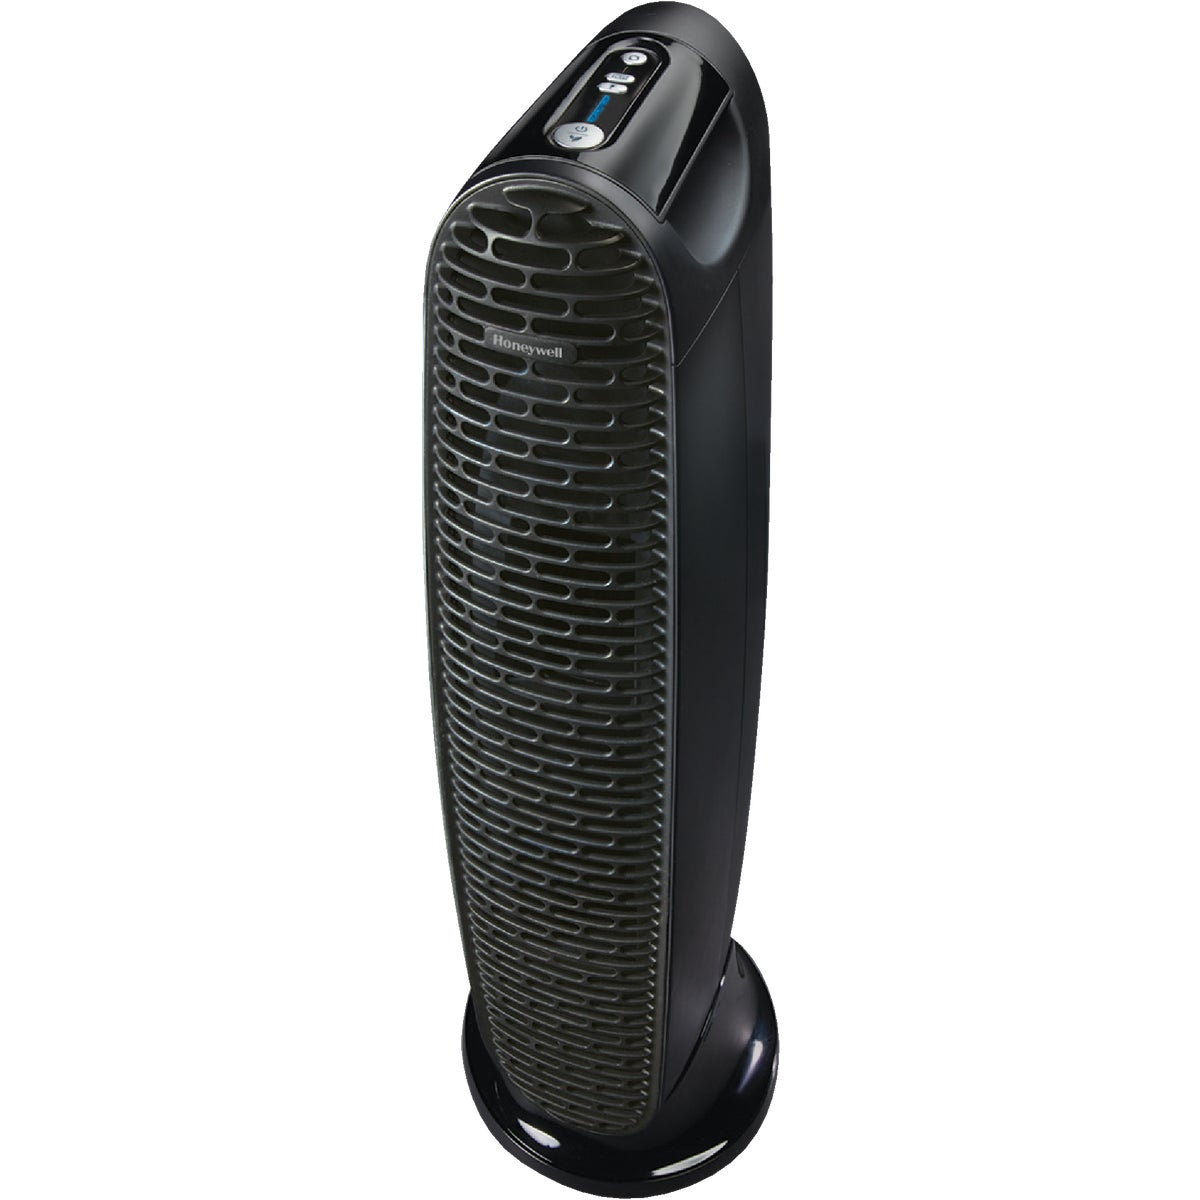 TOWER AIR PURIFIER - HFD-120 by Kaz Home Environment